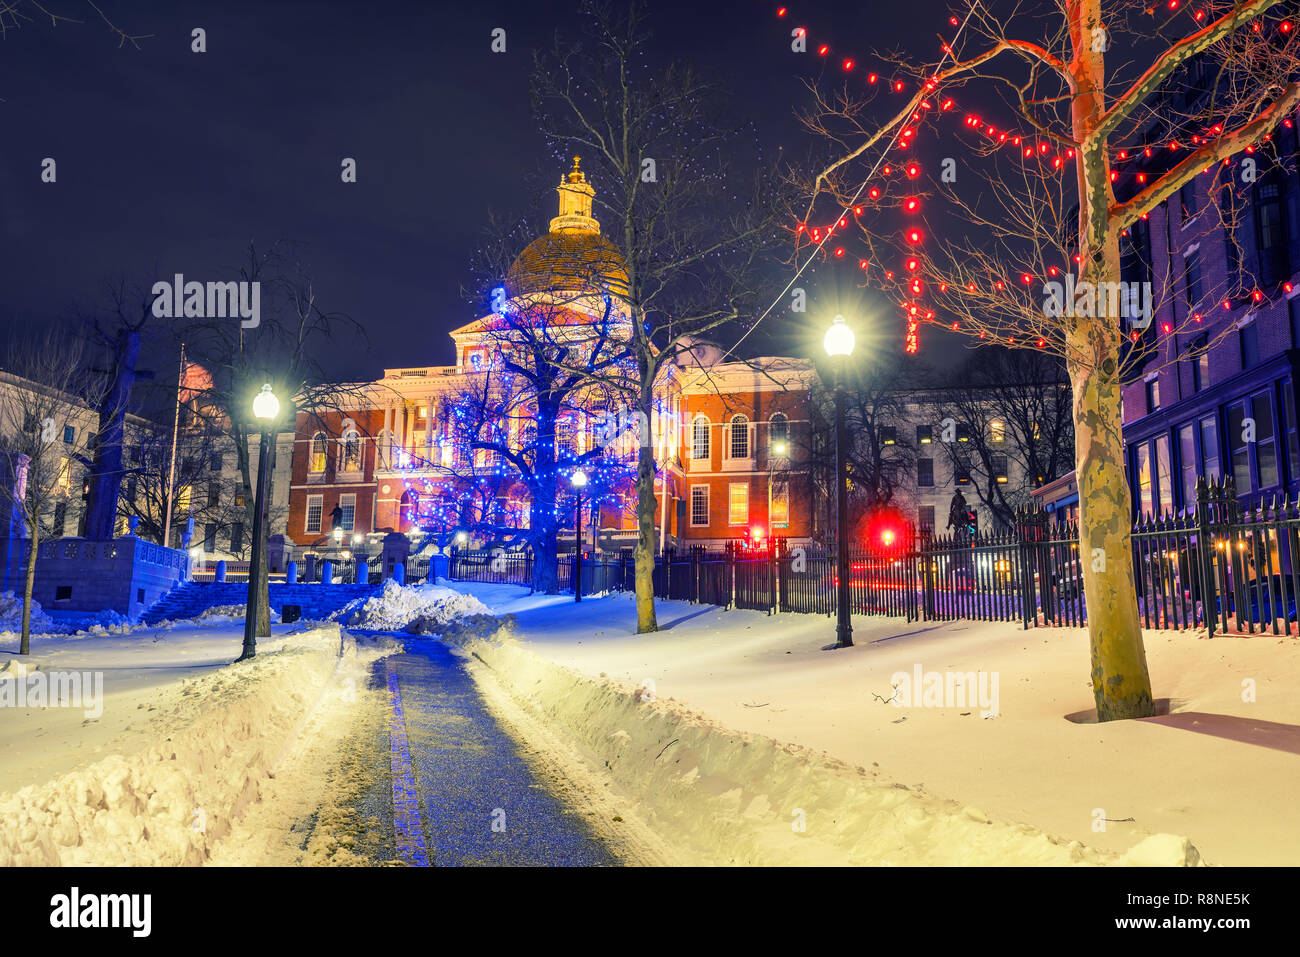 Boston public garden and state house at night - Stock Image